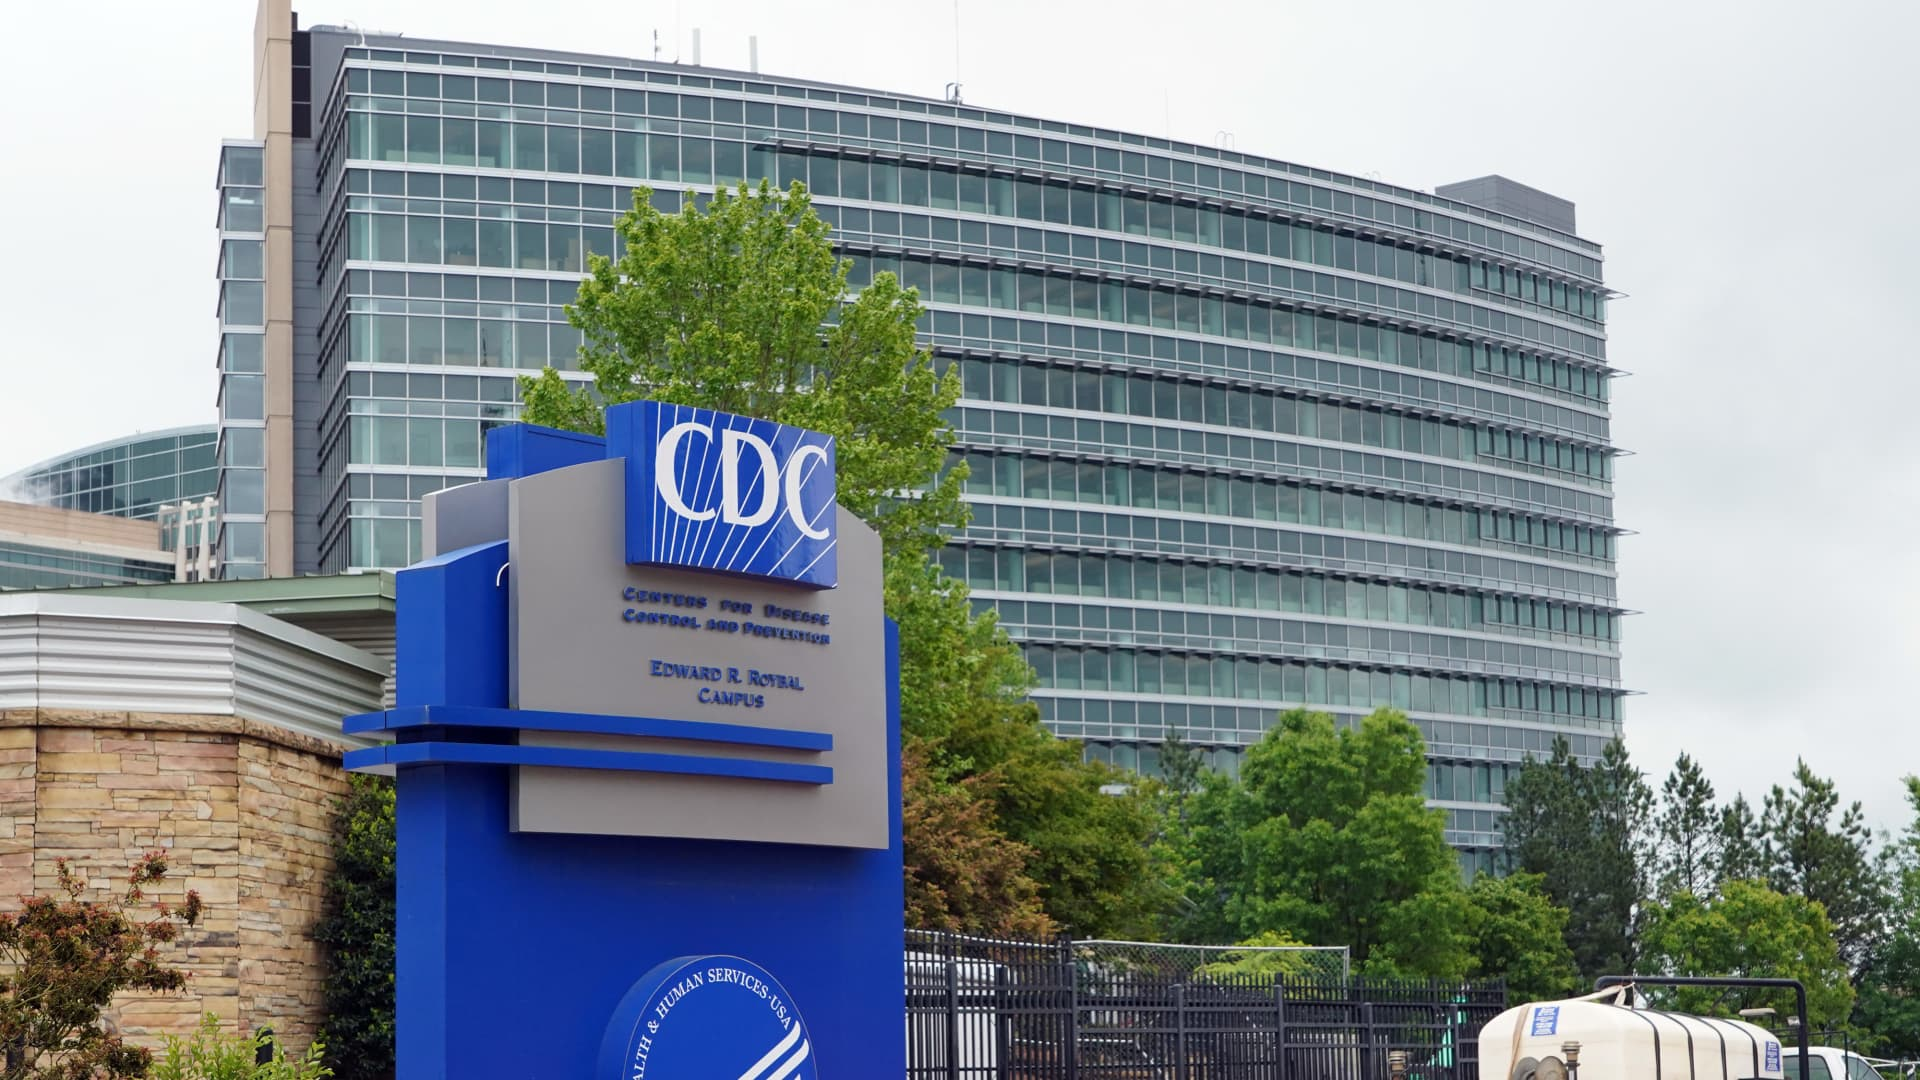 A general view of the Centers for Disease Control and Prevention Edward R. Roybal campus in Atlanta, Georgia on April 23, 2020.